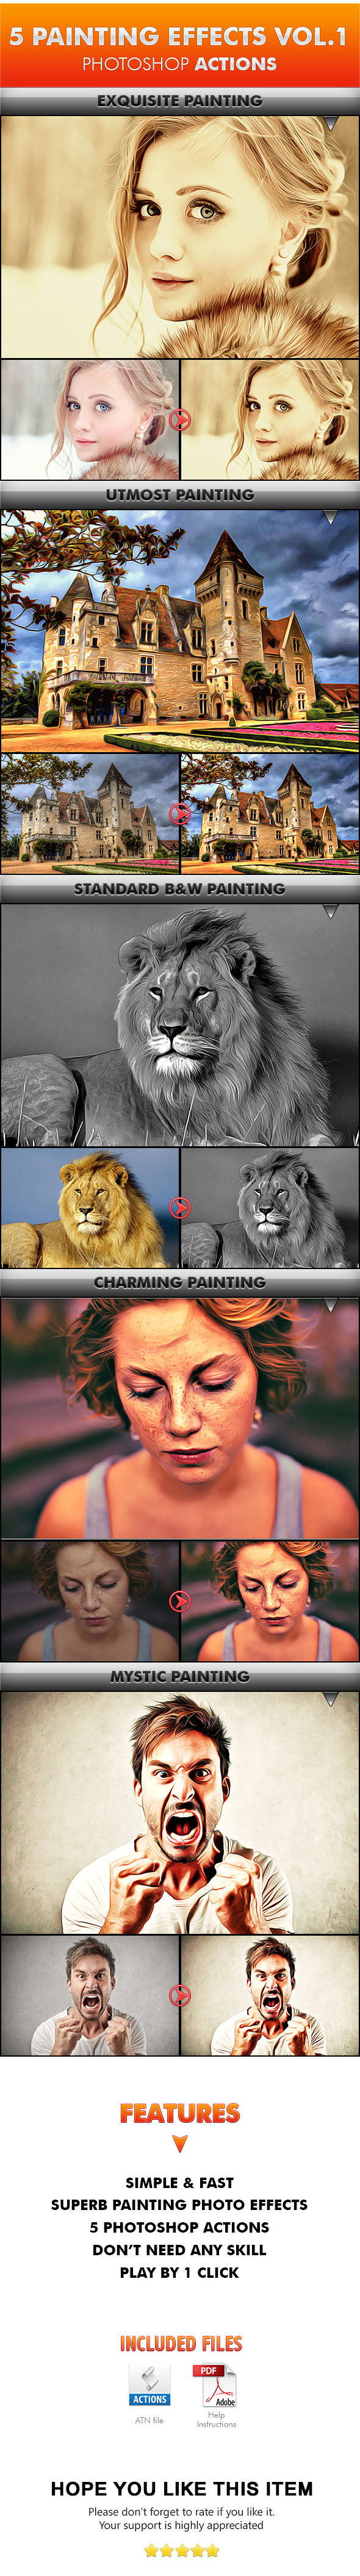 graphicriver_5_painting_effects_vol1_photoshop_actions_11967327